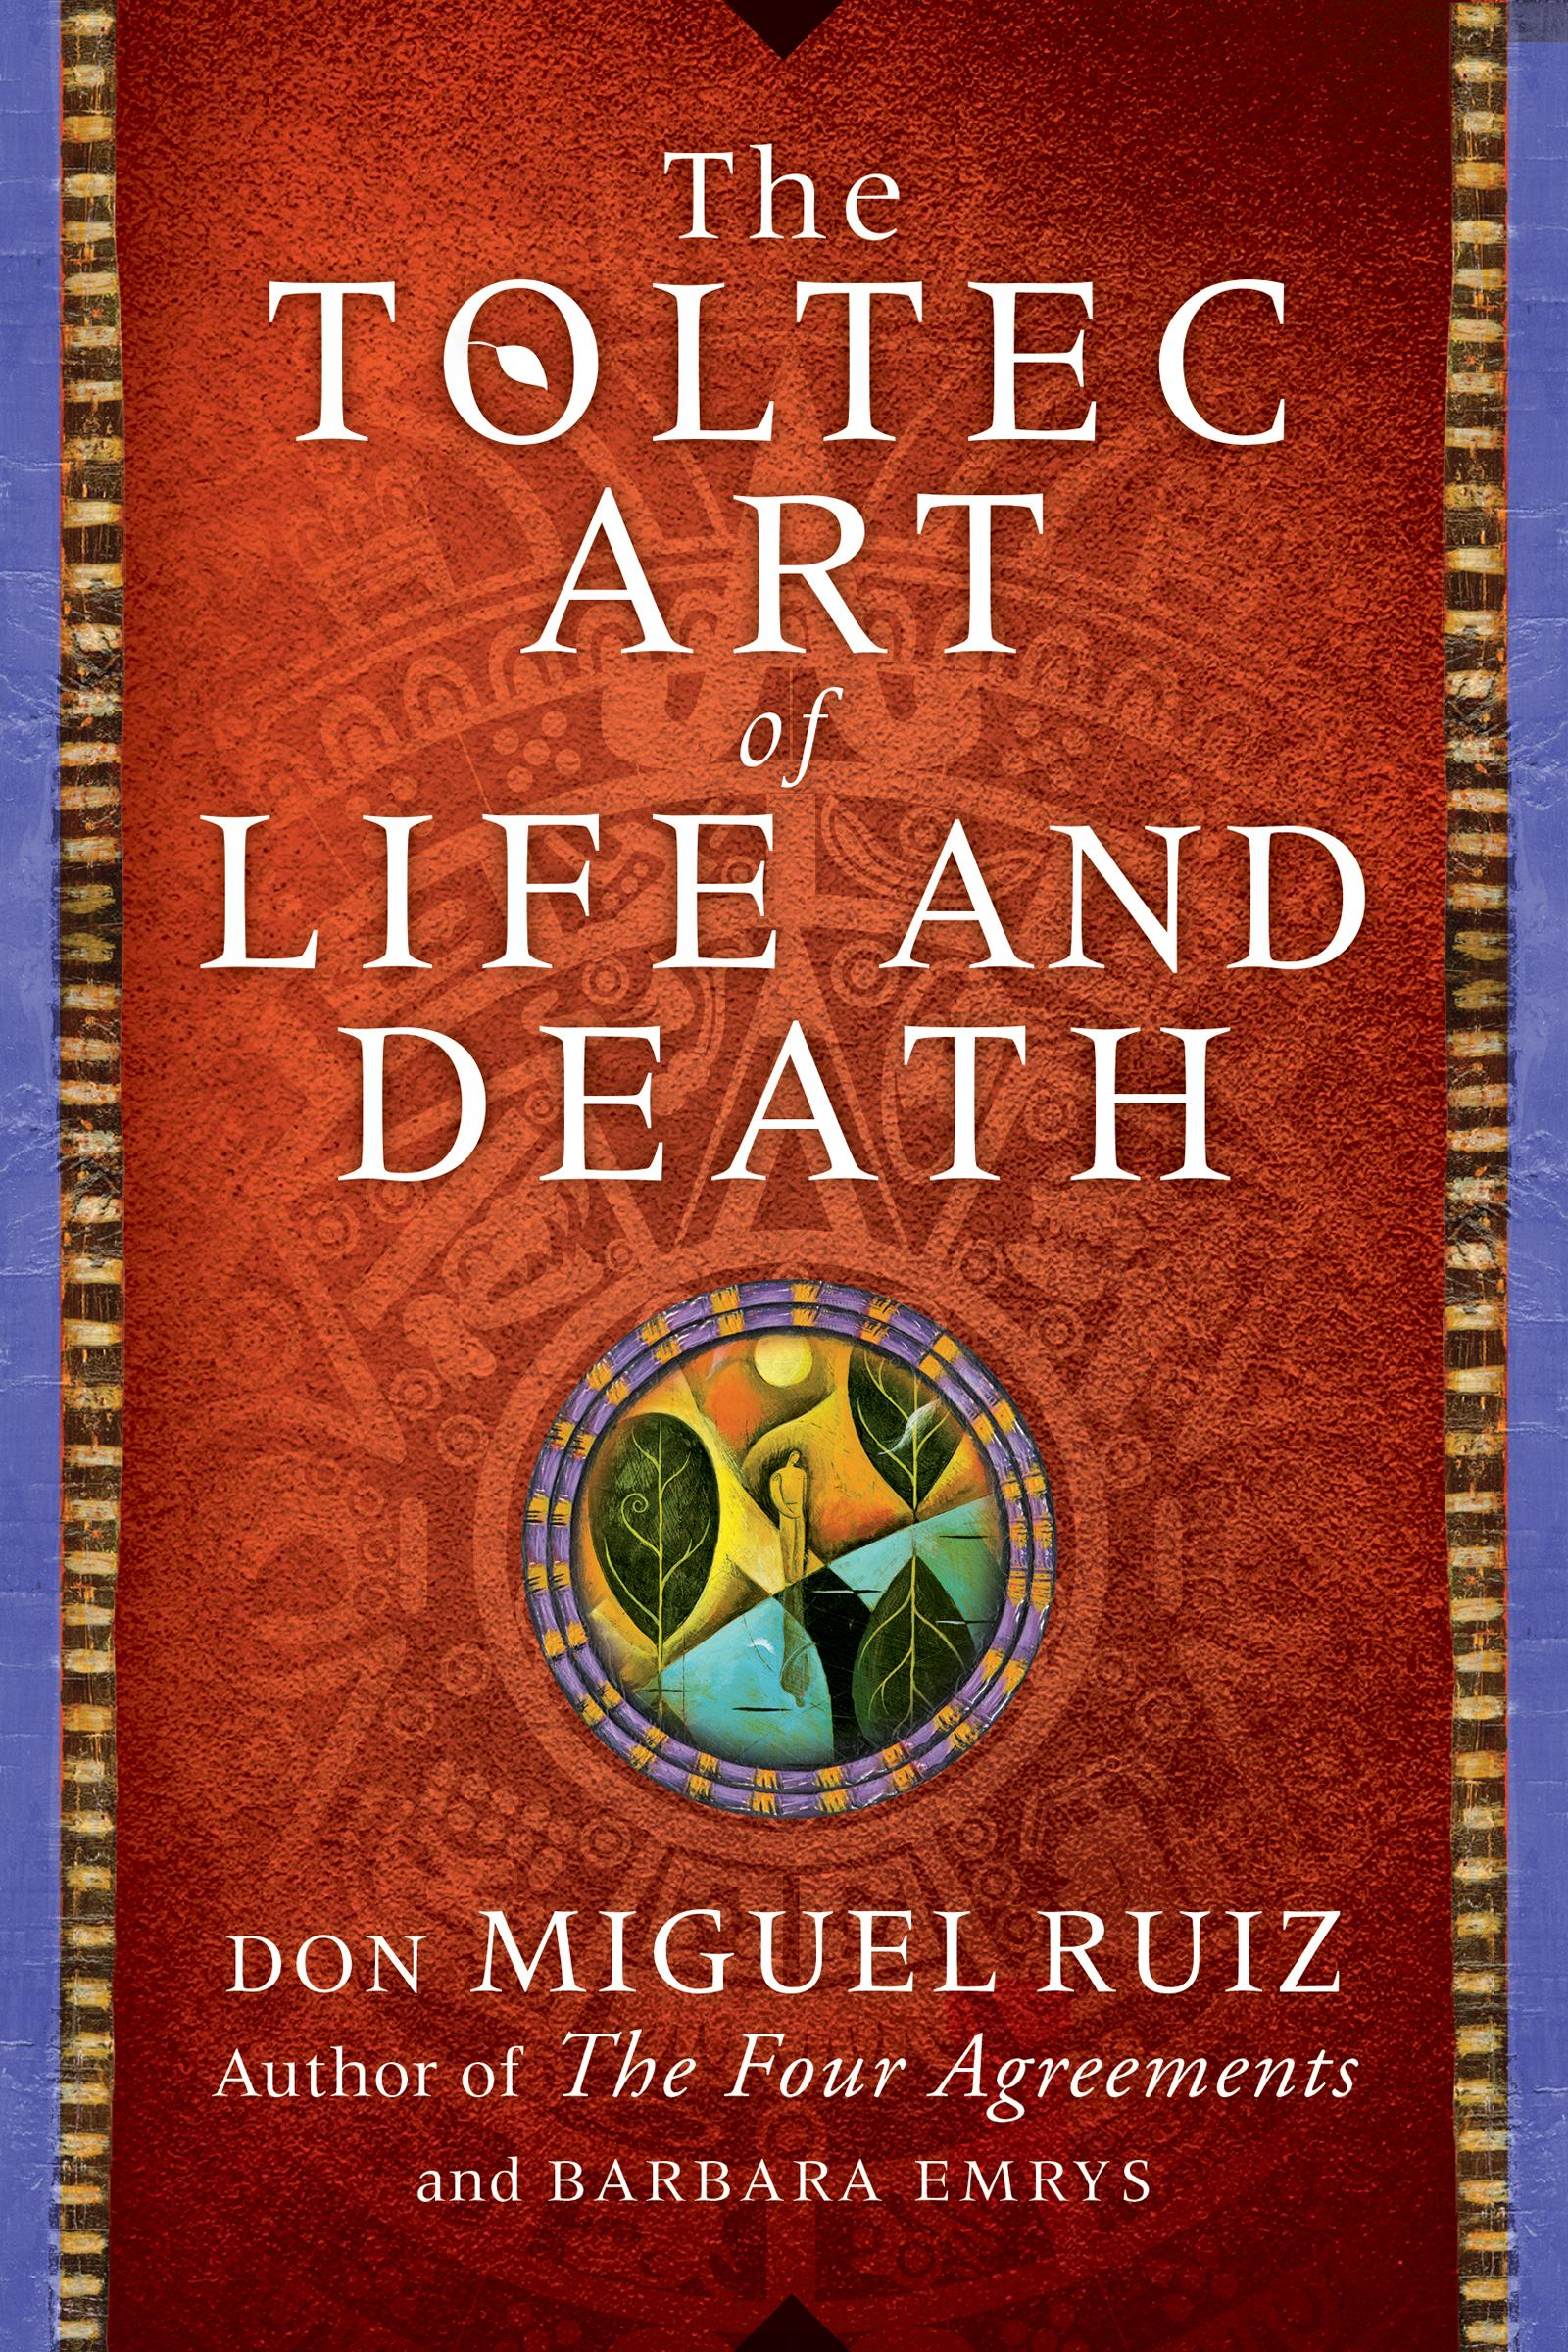 The Toltec Art of Life and Death by Don Miguel Ruiz, Barbara Emrys, ISBN: 9780062390943